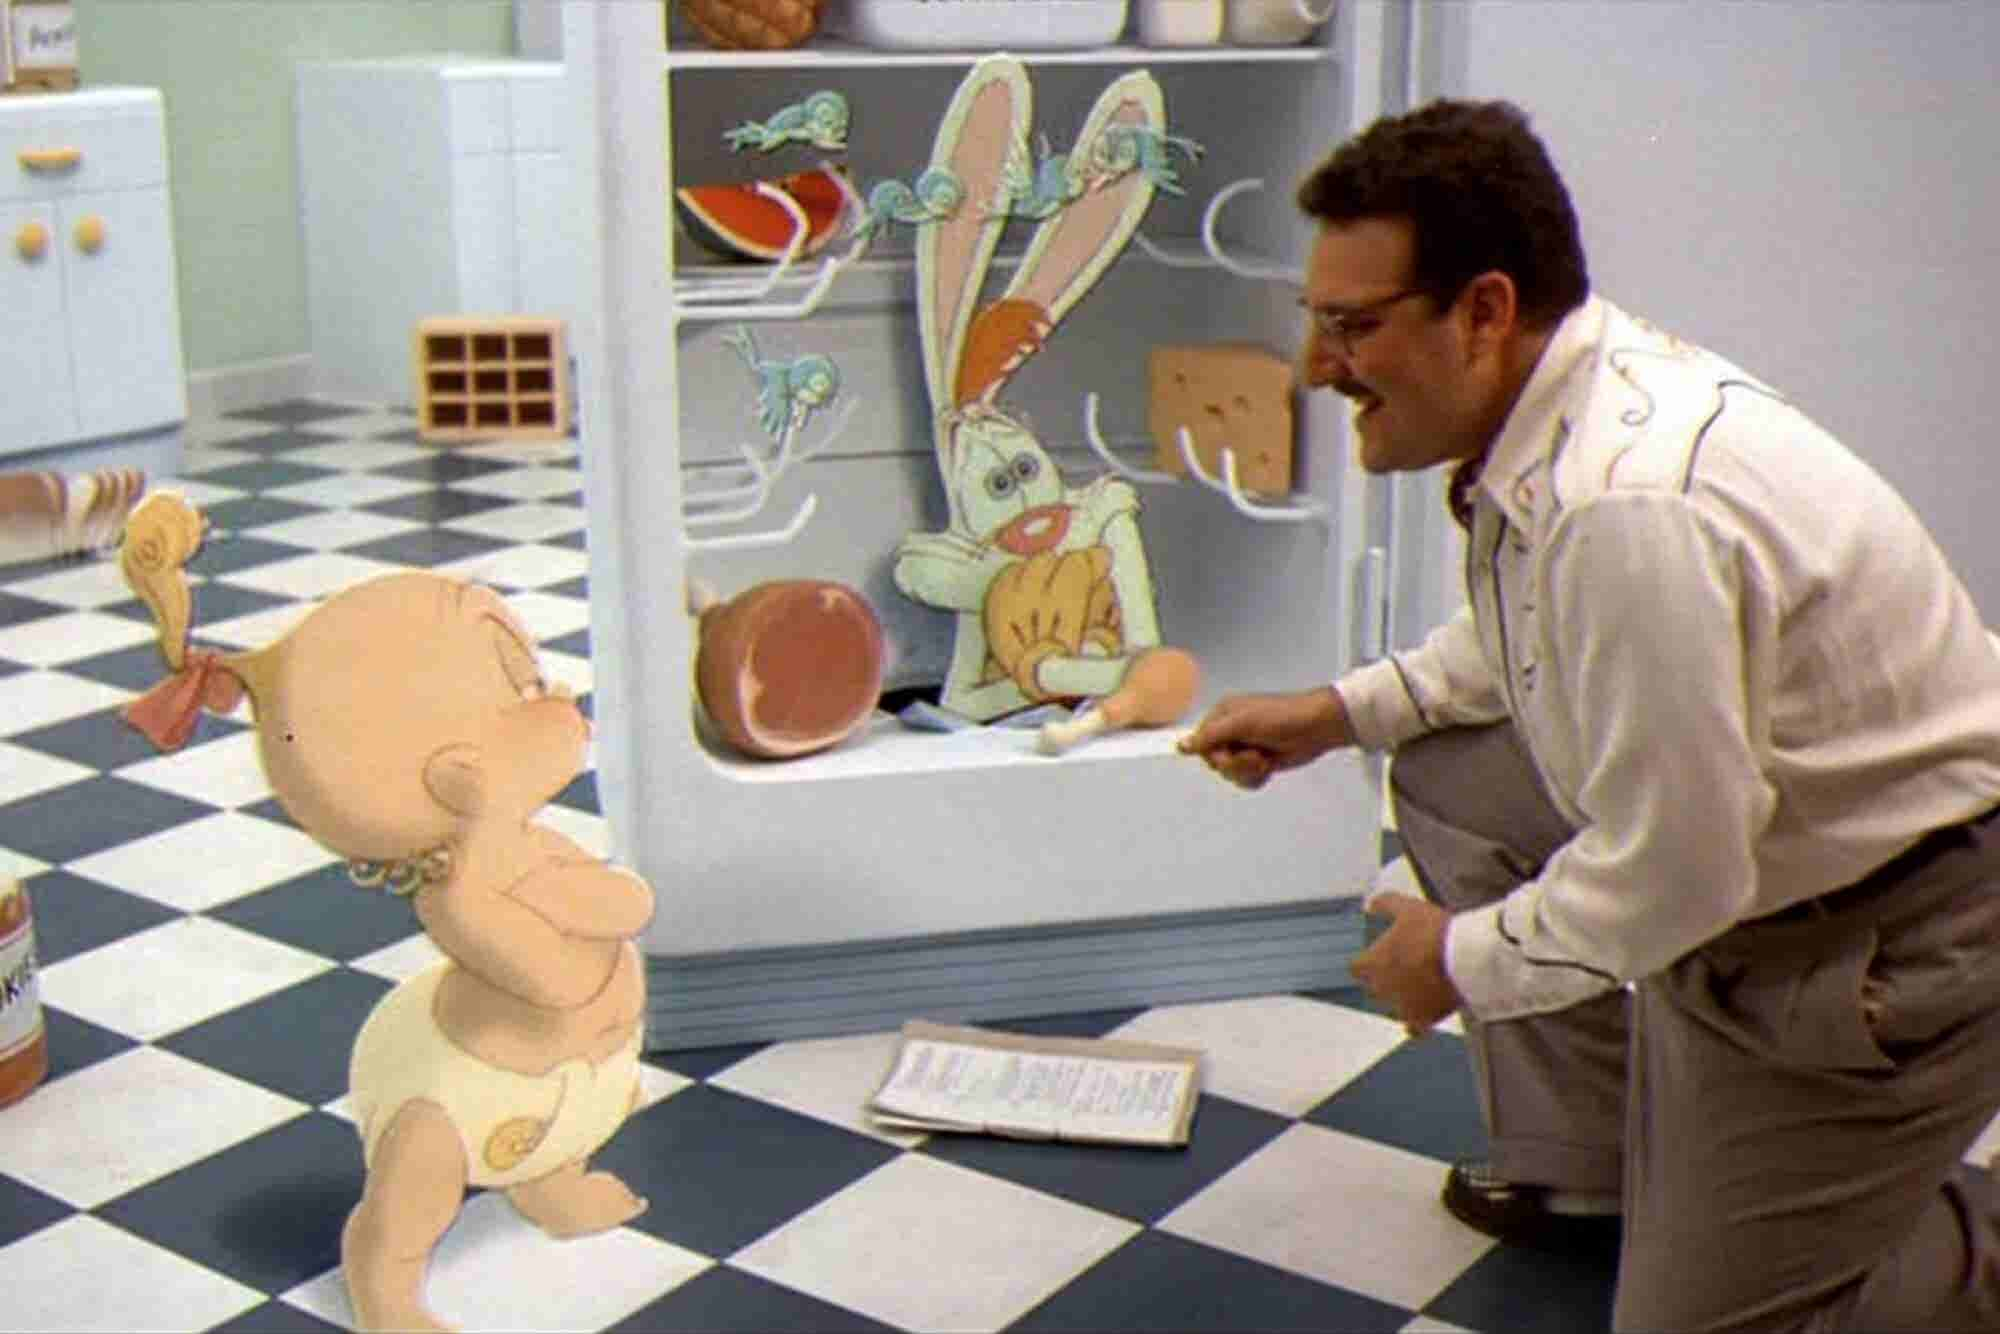 'Who Framed Roger Rabbit?' Is Now a Prophecy. And You Need to Embrace Virtual Reality.